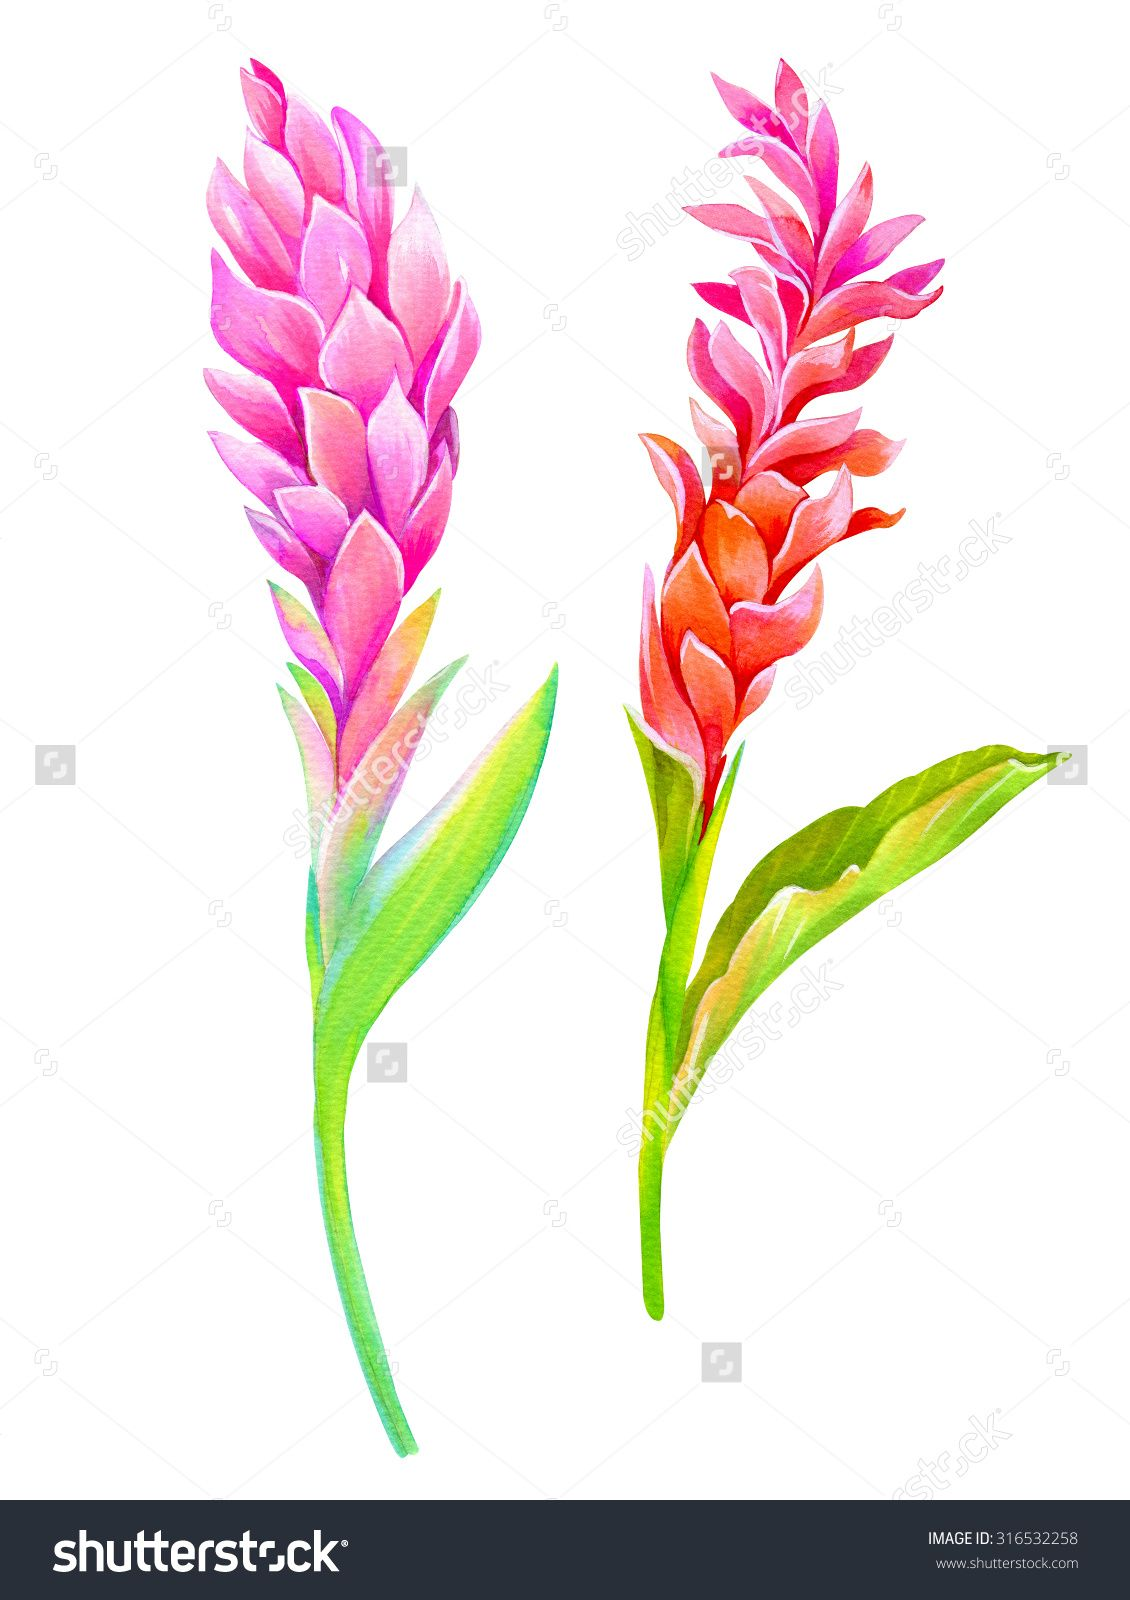 Stock Photo Two Isolated Red Ginger Flowers Beautiful Botanical Illustrations Amazing Details And Colors 3 Ginger Flower Tropical Flower Tattoos Flower Drawing